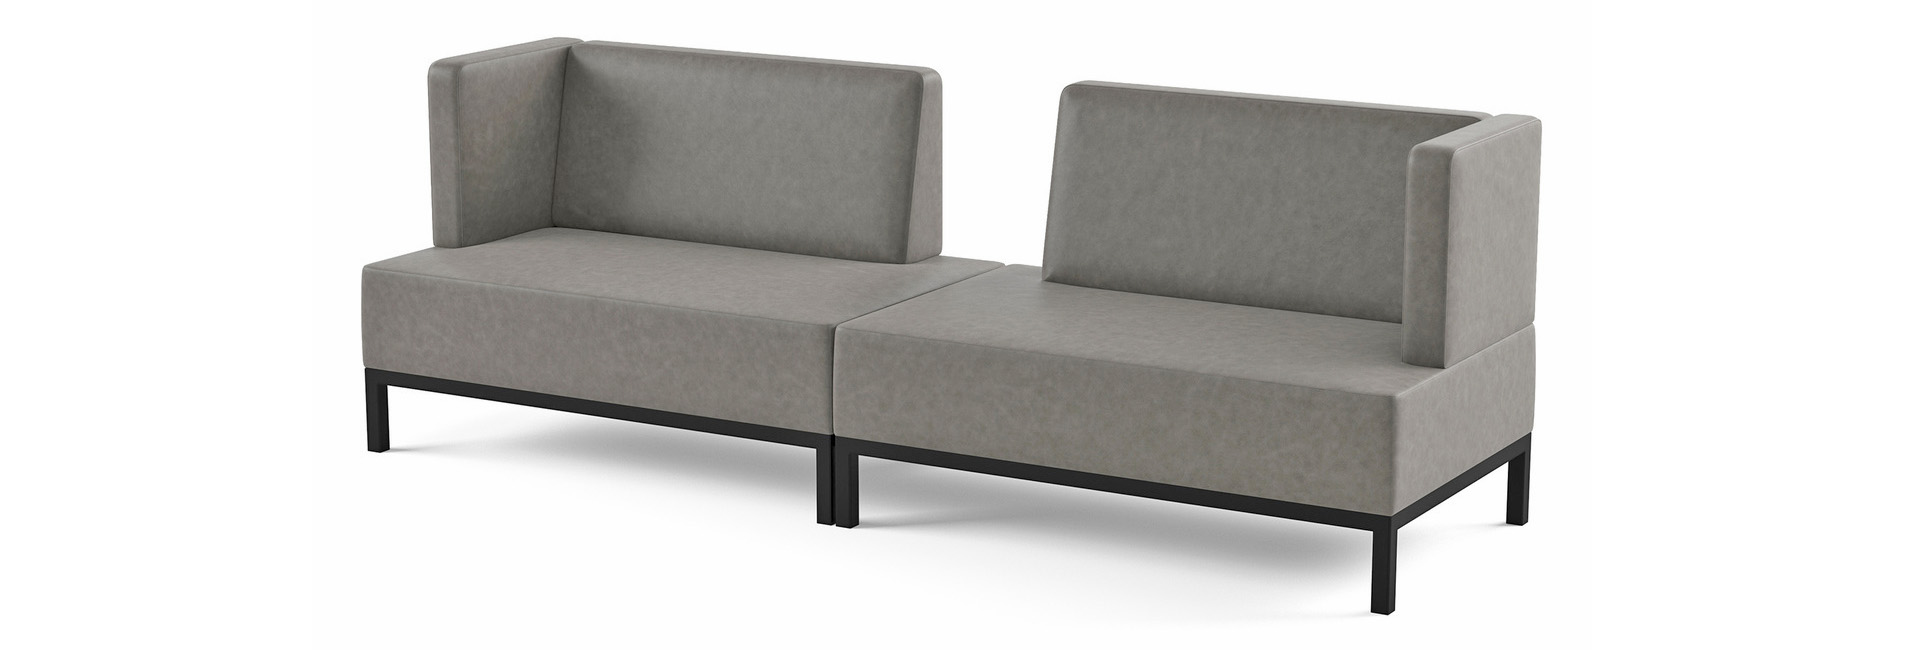 Collection of sofas